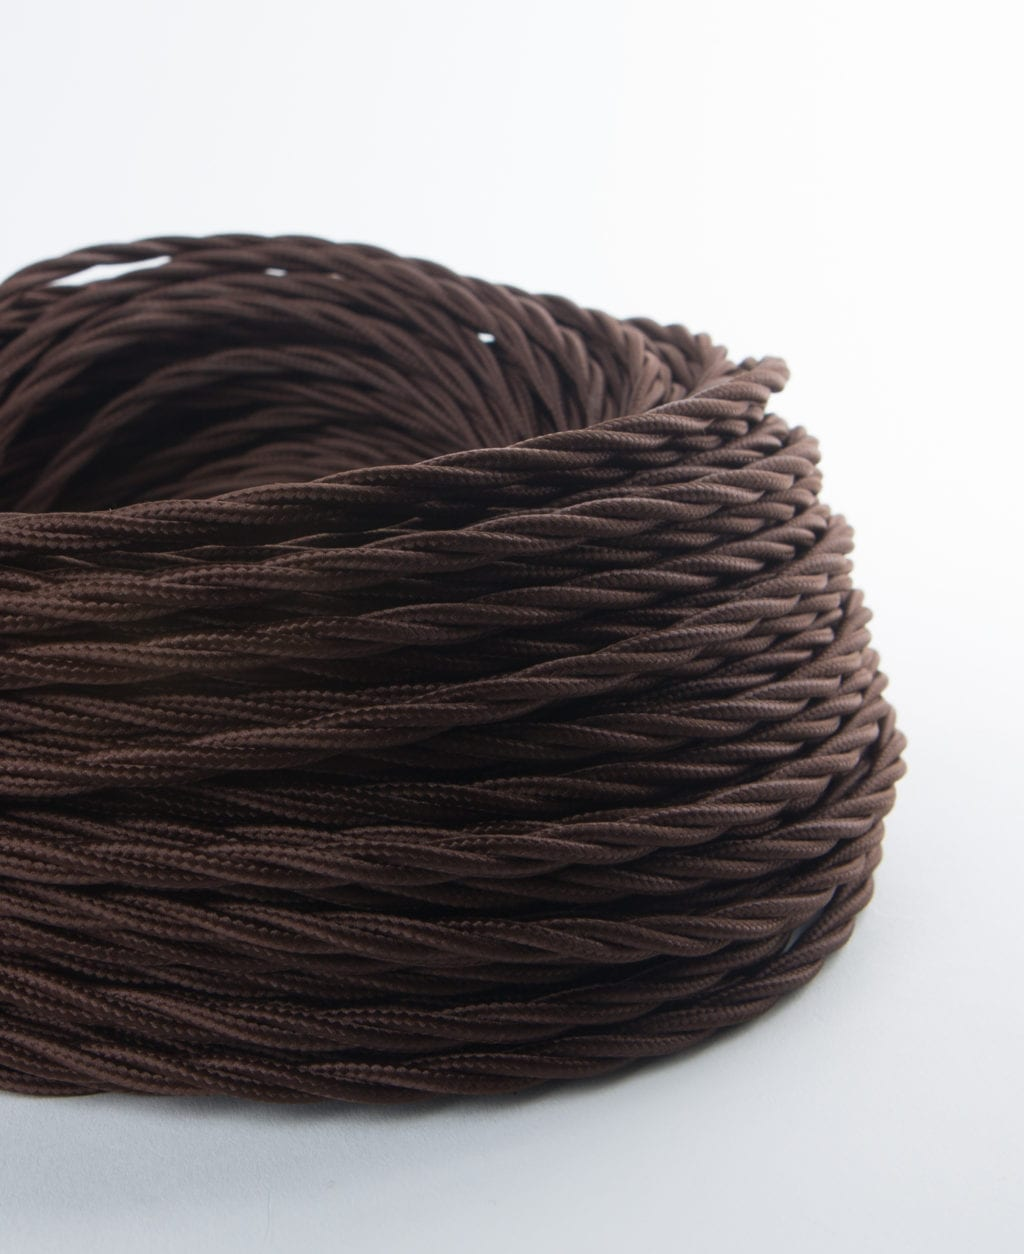 closeup of brown twisted fabric cable coil against white background